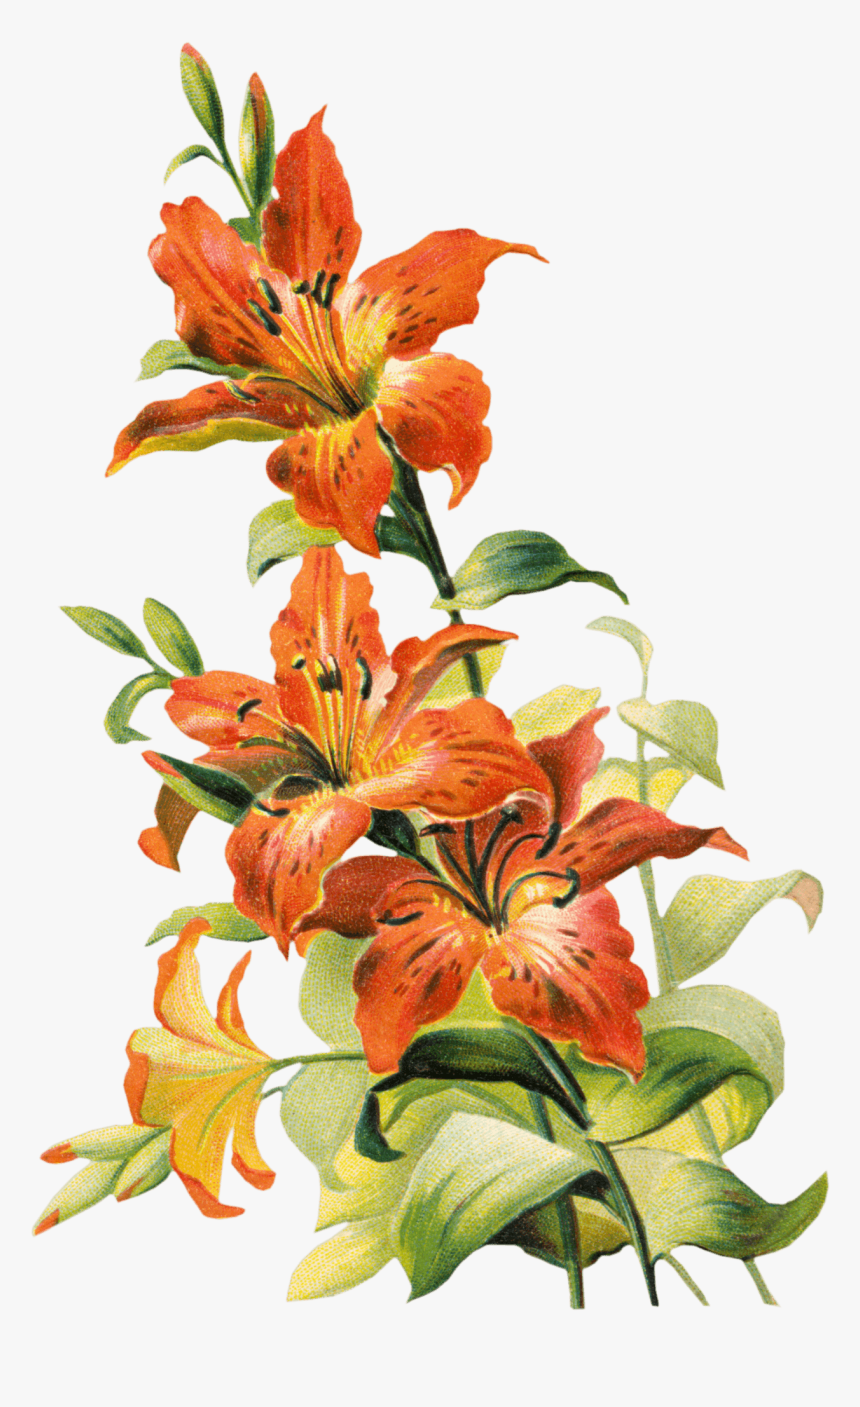 Transparent Lilies Clipart Tiger Lily Flower Png Png Download